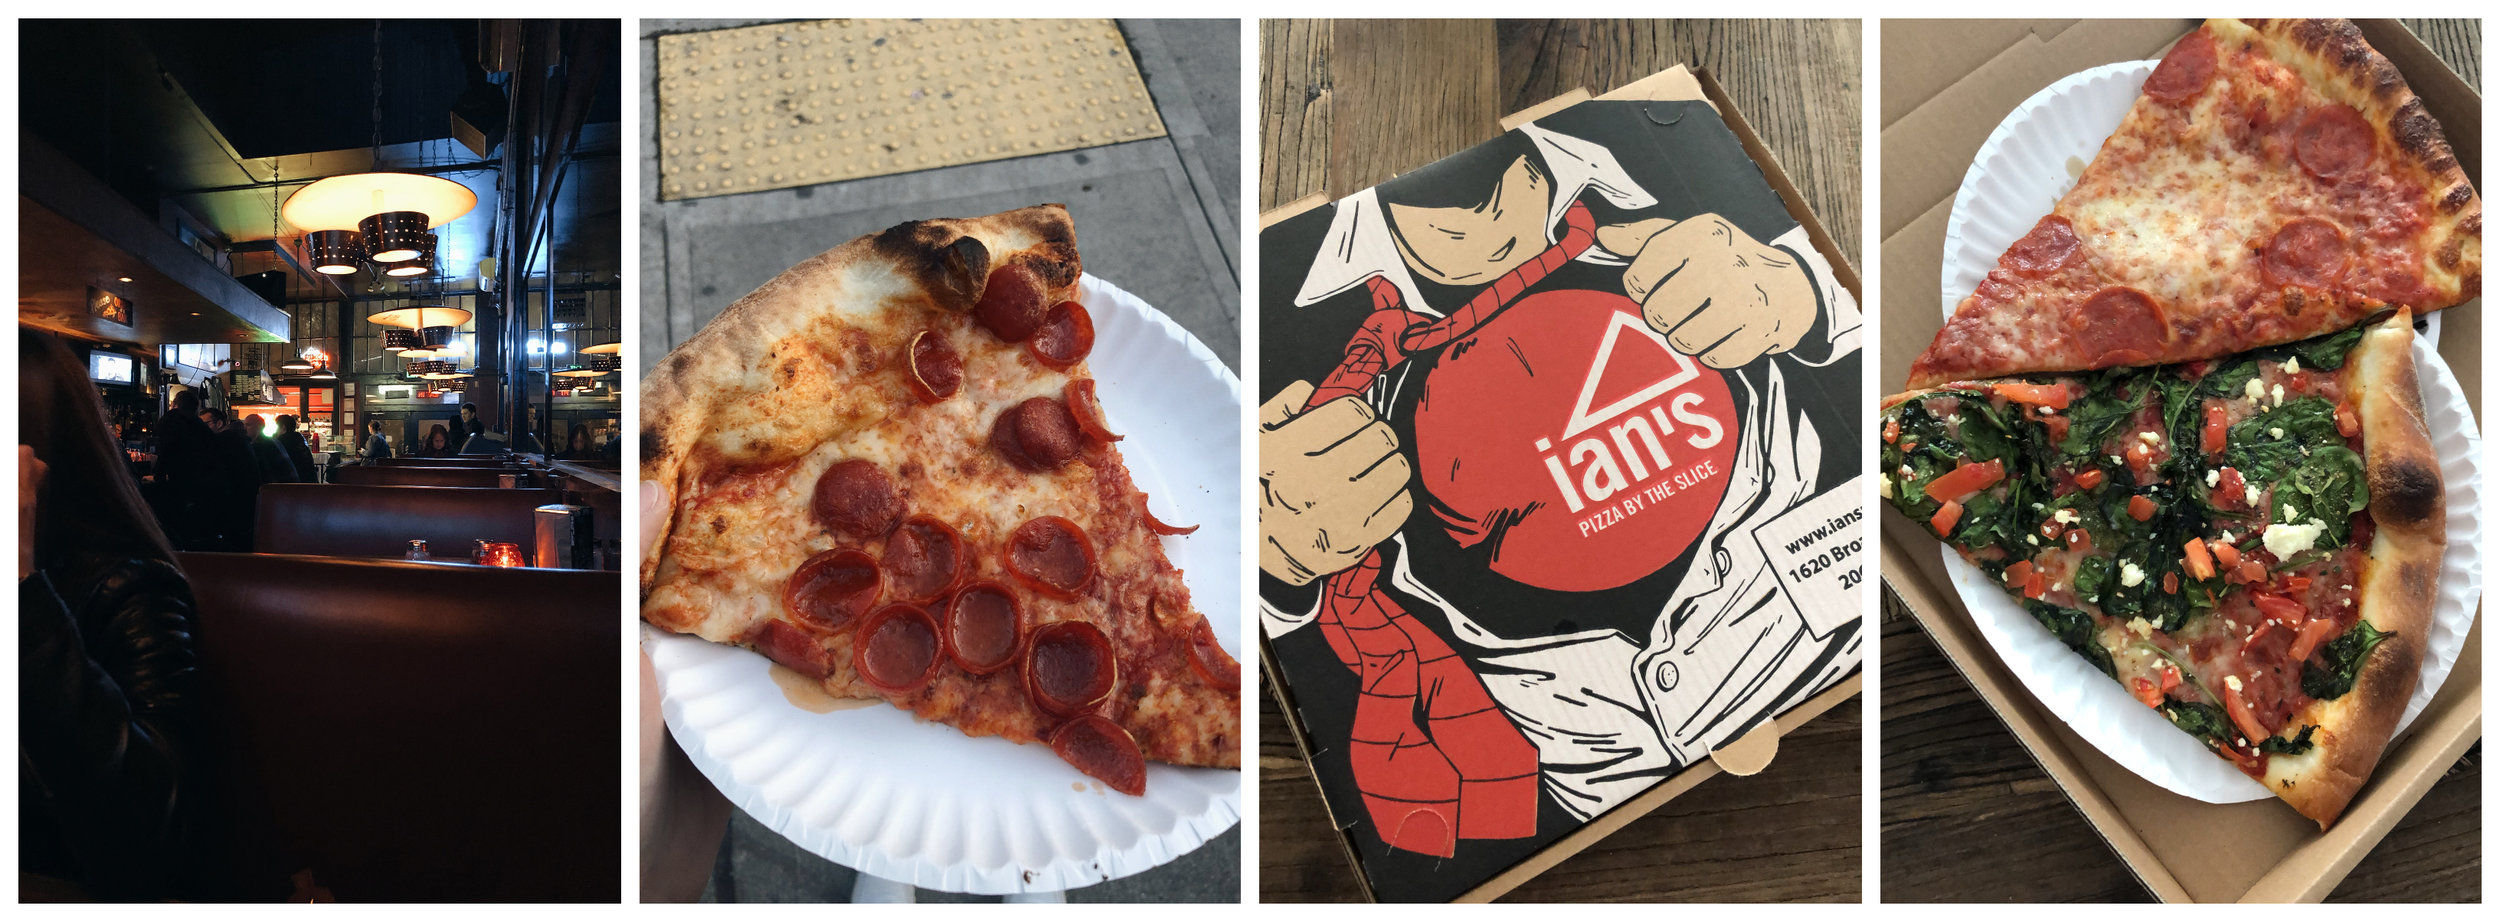 Left (2): Big Mario's Pizza, Right (2): Ian's Pizza by the Slice